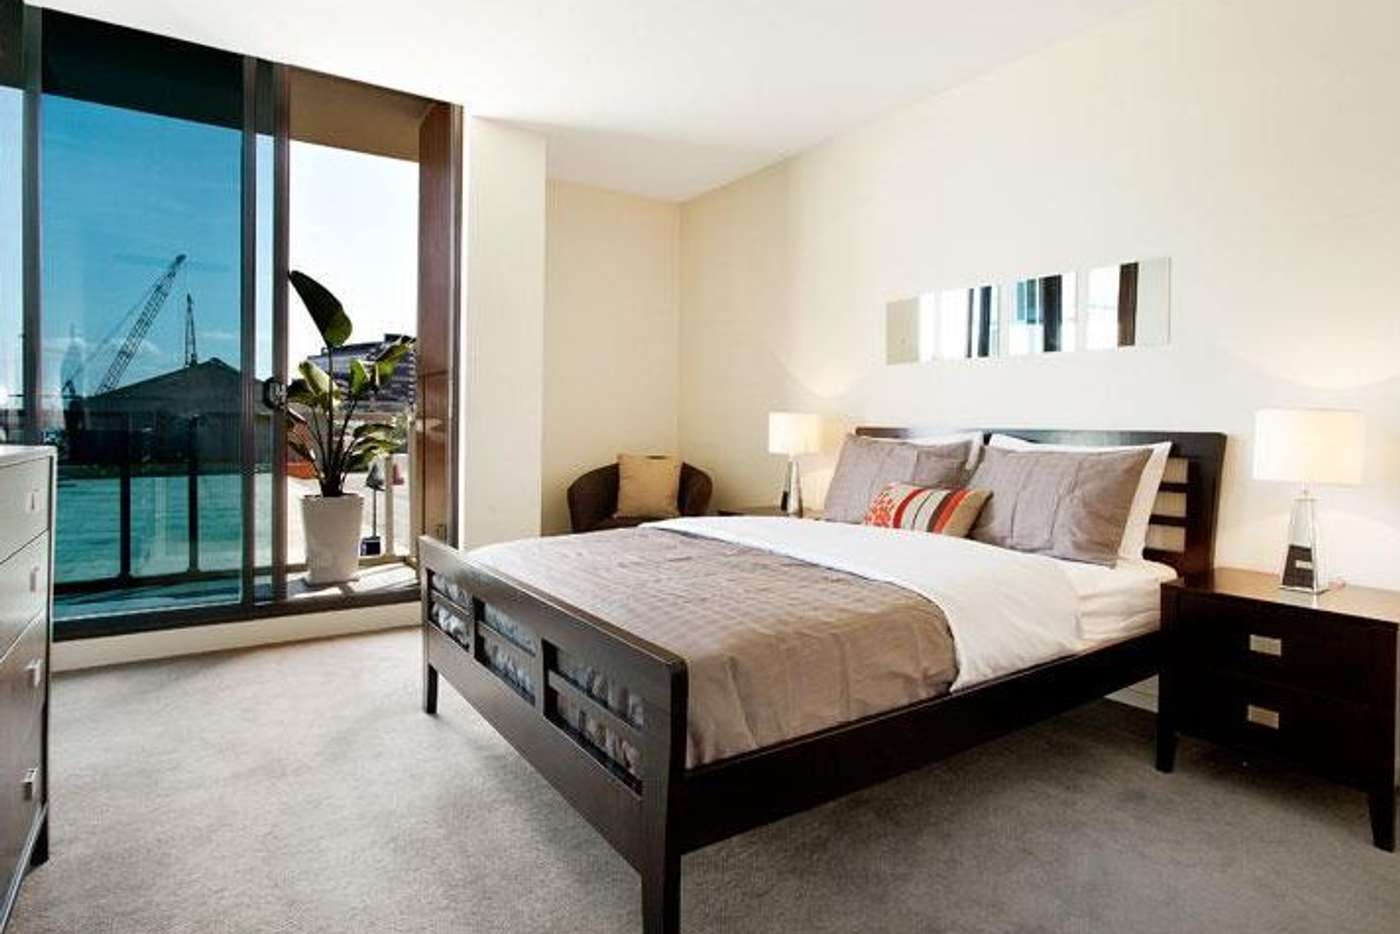 Sixth view of Homely apartment listing, 114/60 Siddeley Street, Docklands VIC 3008